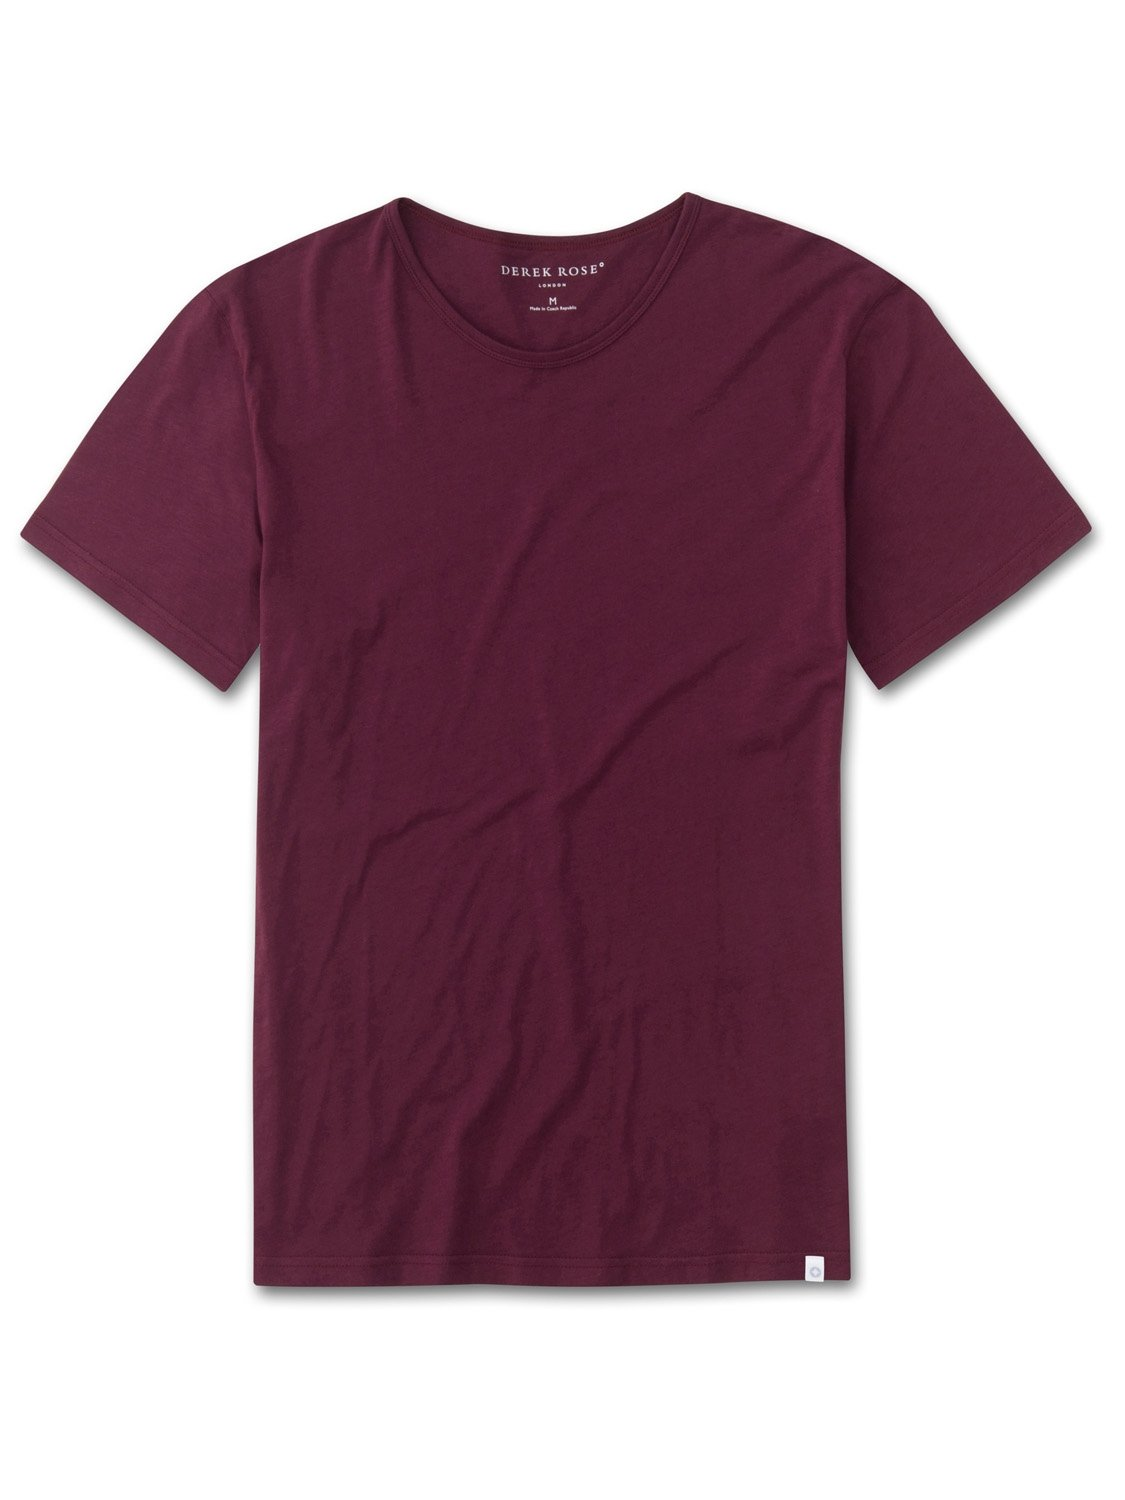 Men's Short Sleeve T-Shirt Riley 2 Pima Cotton Burgundy